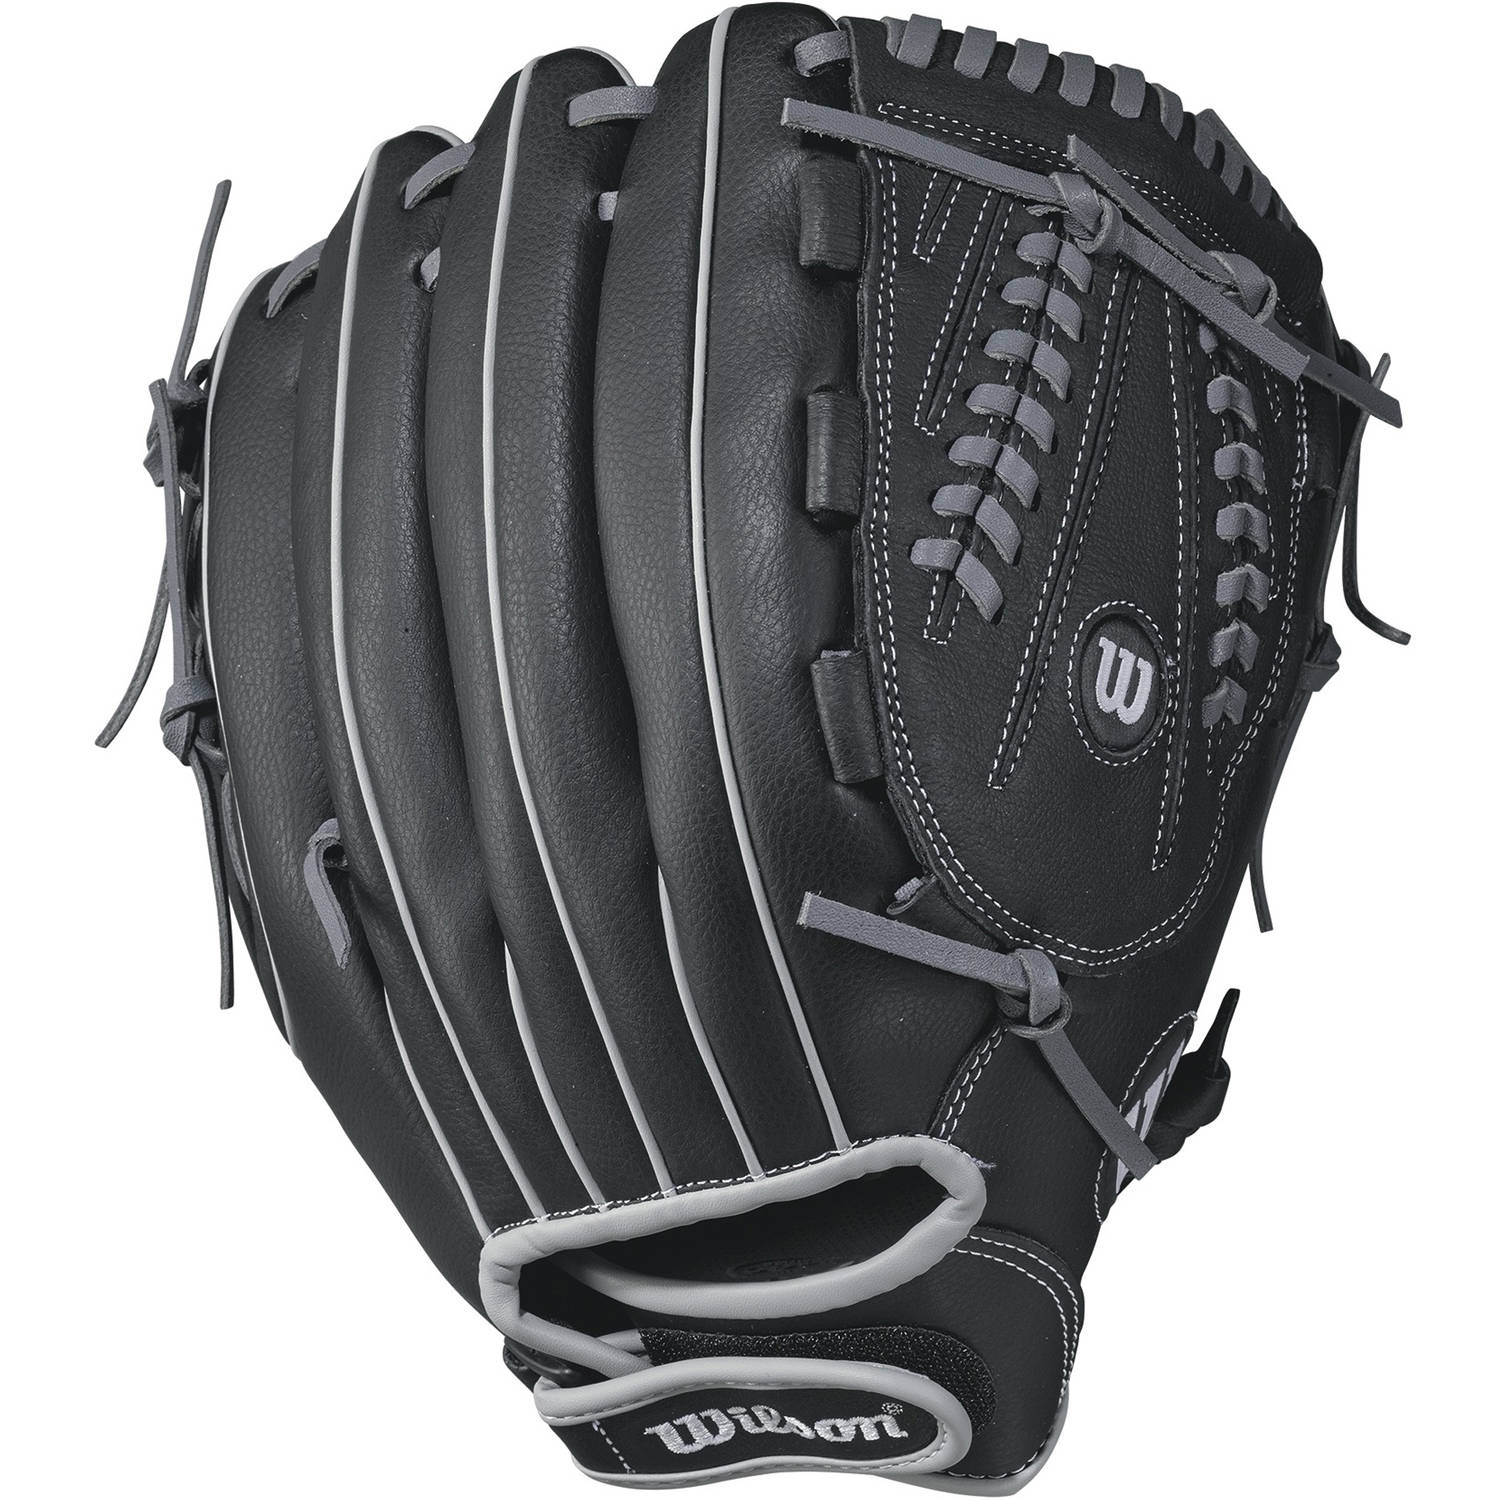 Wilson Sporting Goods A360 Slowpitch Softball Glove by Wilson